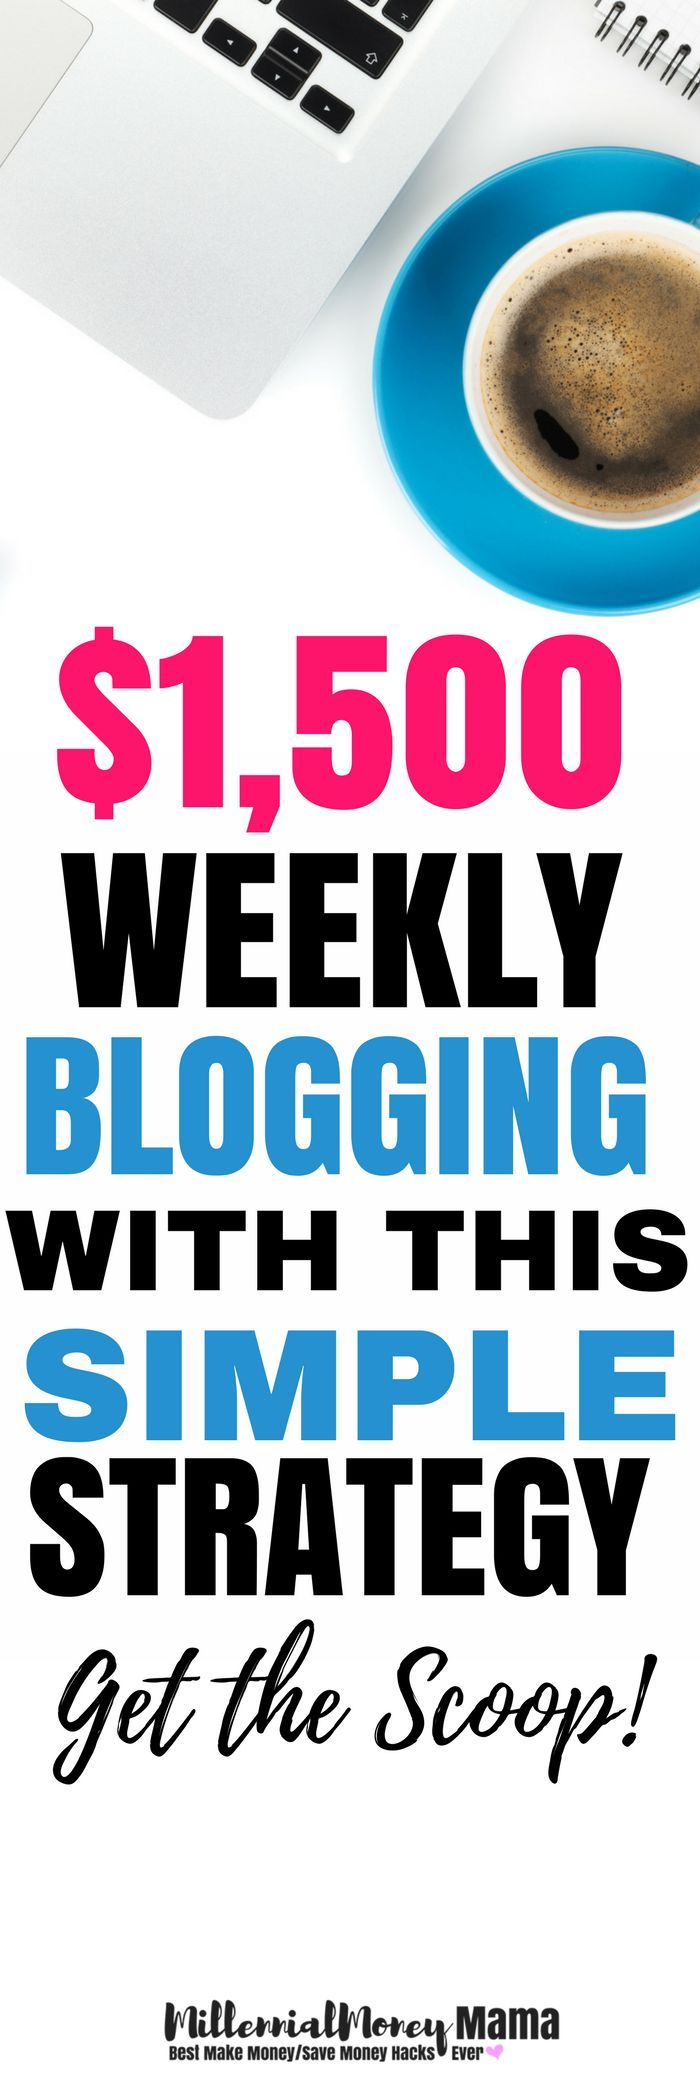 Having trouble earning income blogging? Check out this simple easy strategy (beginner-friendly) that shows you how to make thousands weekly on your blog. I book hundreds and thousands weekly on my new blogs. Get the full scoop. #makemoneyblogging #blogging #bloggingformoney #bloggingforbeginners #bloggingfornewbies #bloggingnewbies #bloggingbeginners #bloggingtips #workfromhome #makemoneyfromhome #makemoneyfromhomelegit #makemoneyfromhomemom